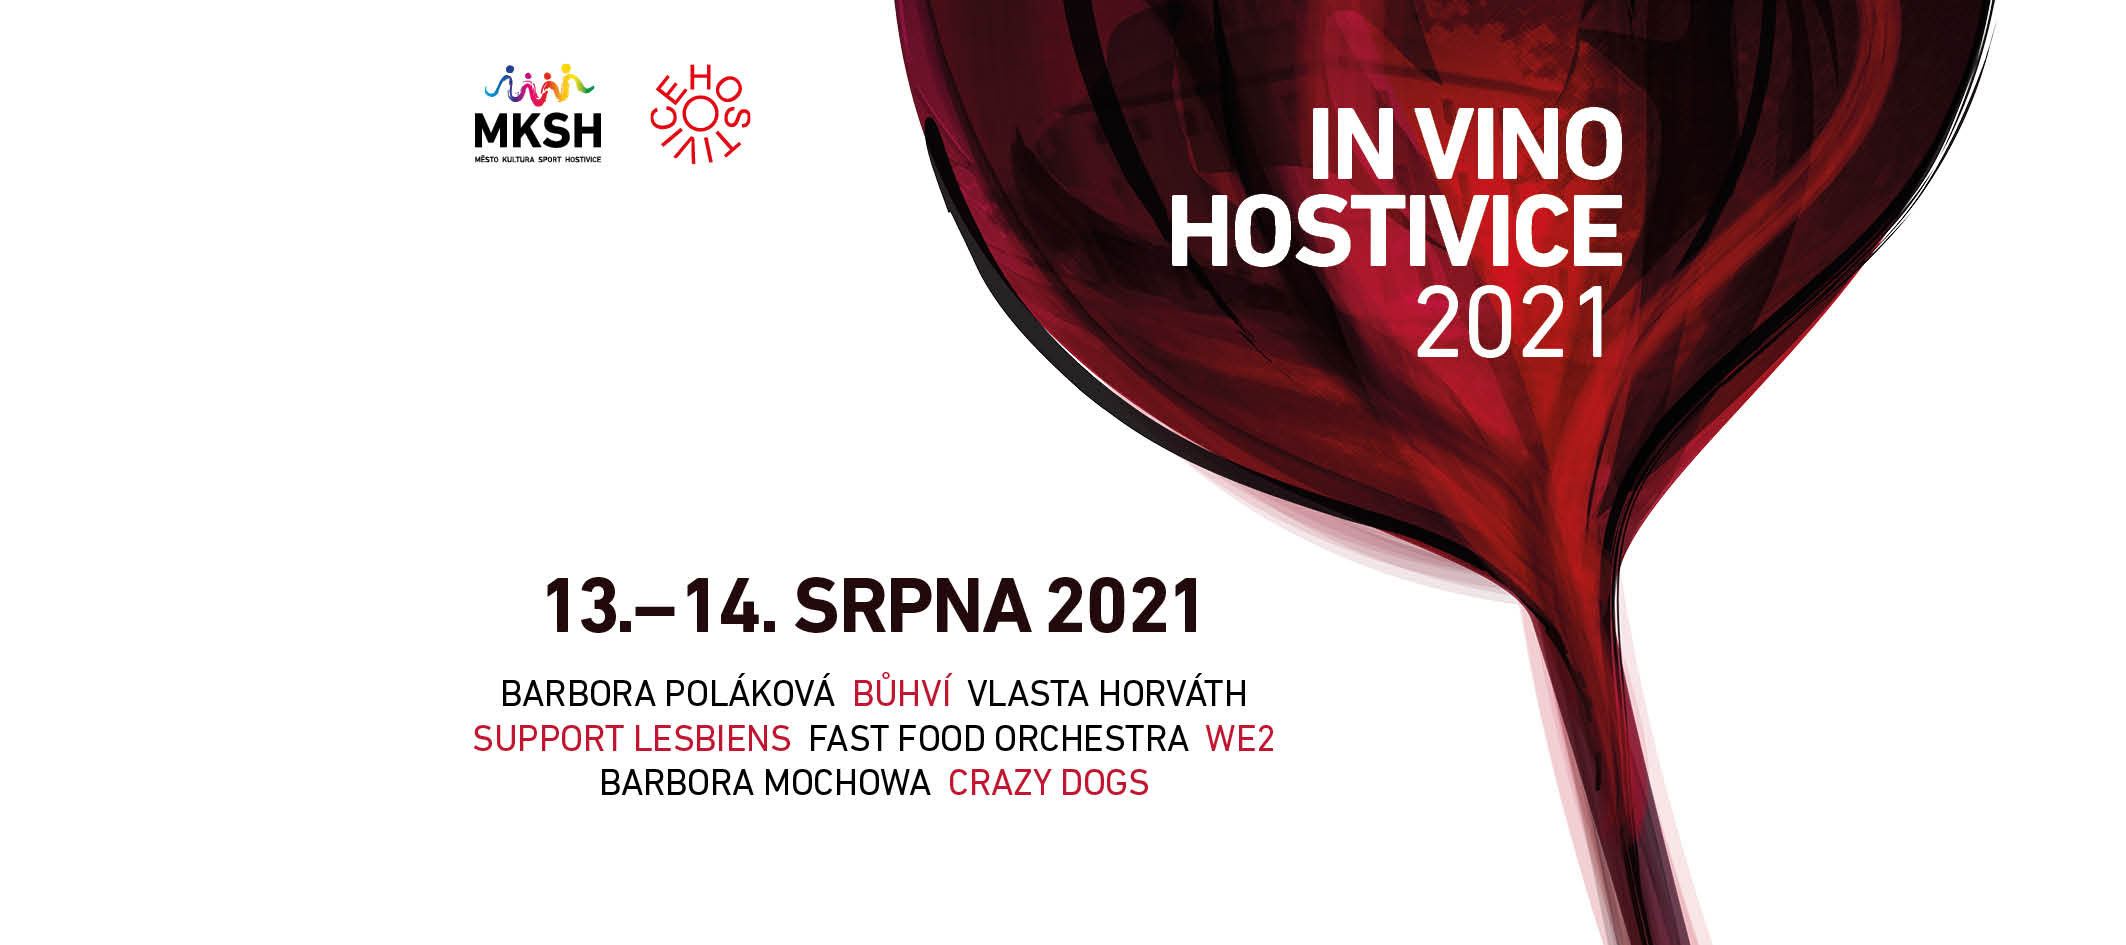 IV VINO HOSTIVICE 2021